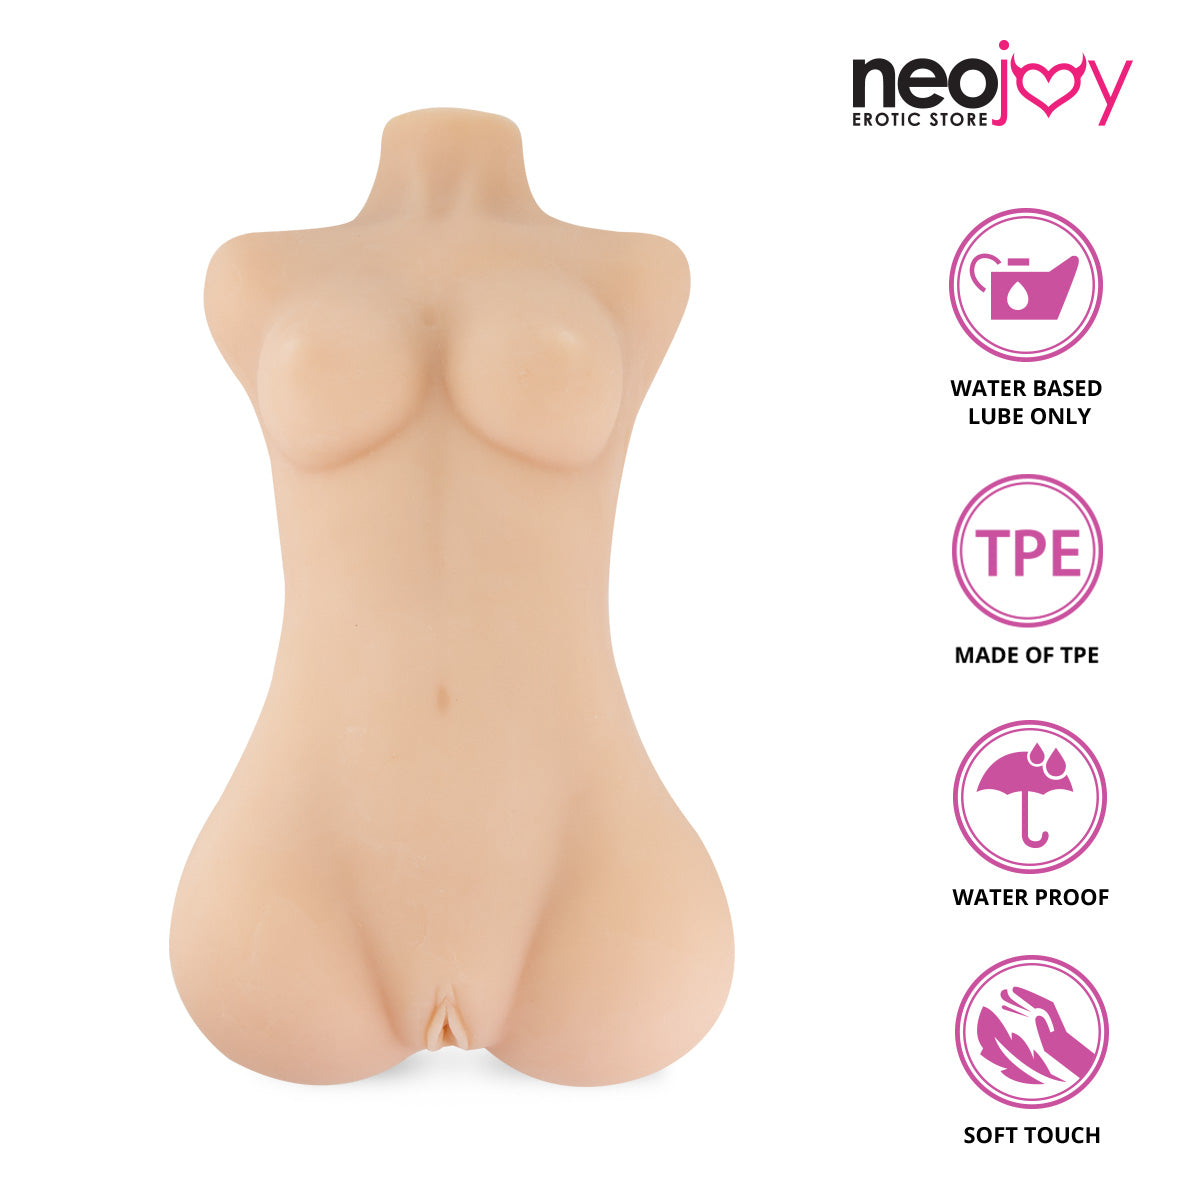 Neojoy Mini Body Realistic Vagina & Ass Sex Doll With Internal Frame - Medium 6kg Realistic Vaginas - lucidtoys.com Dildo vibrator sex toy love doll